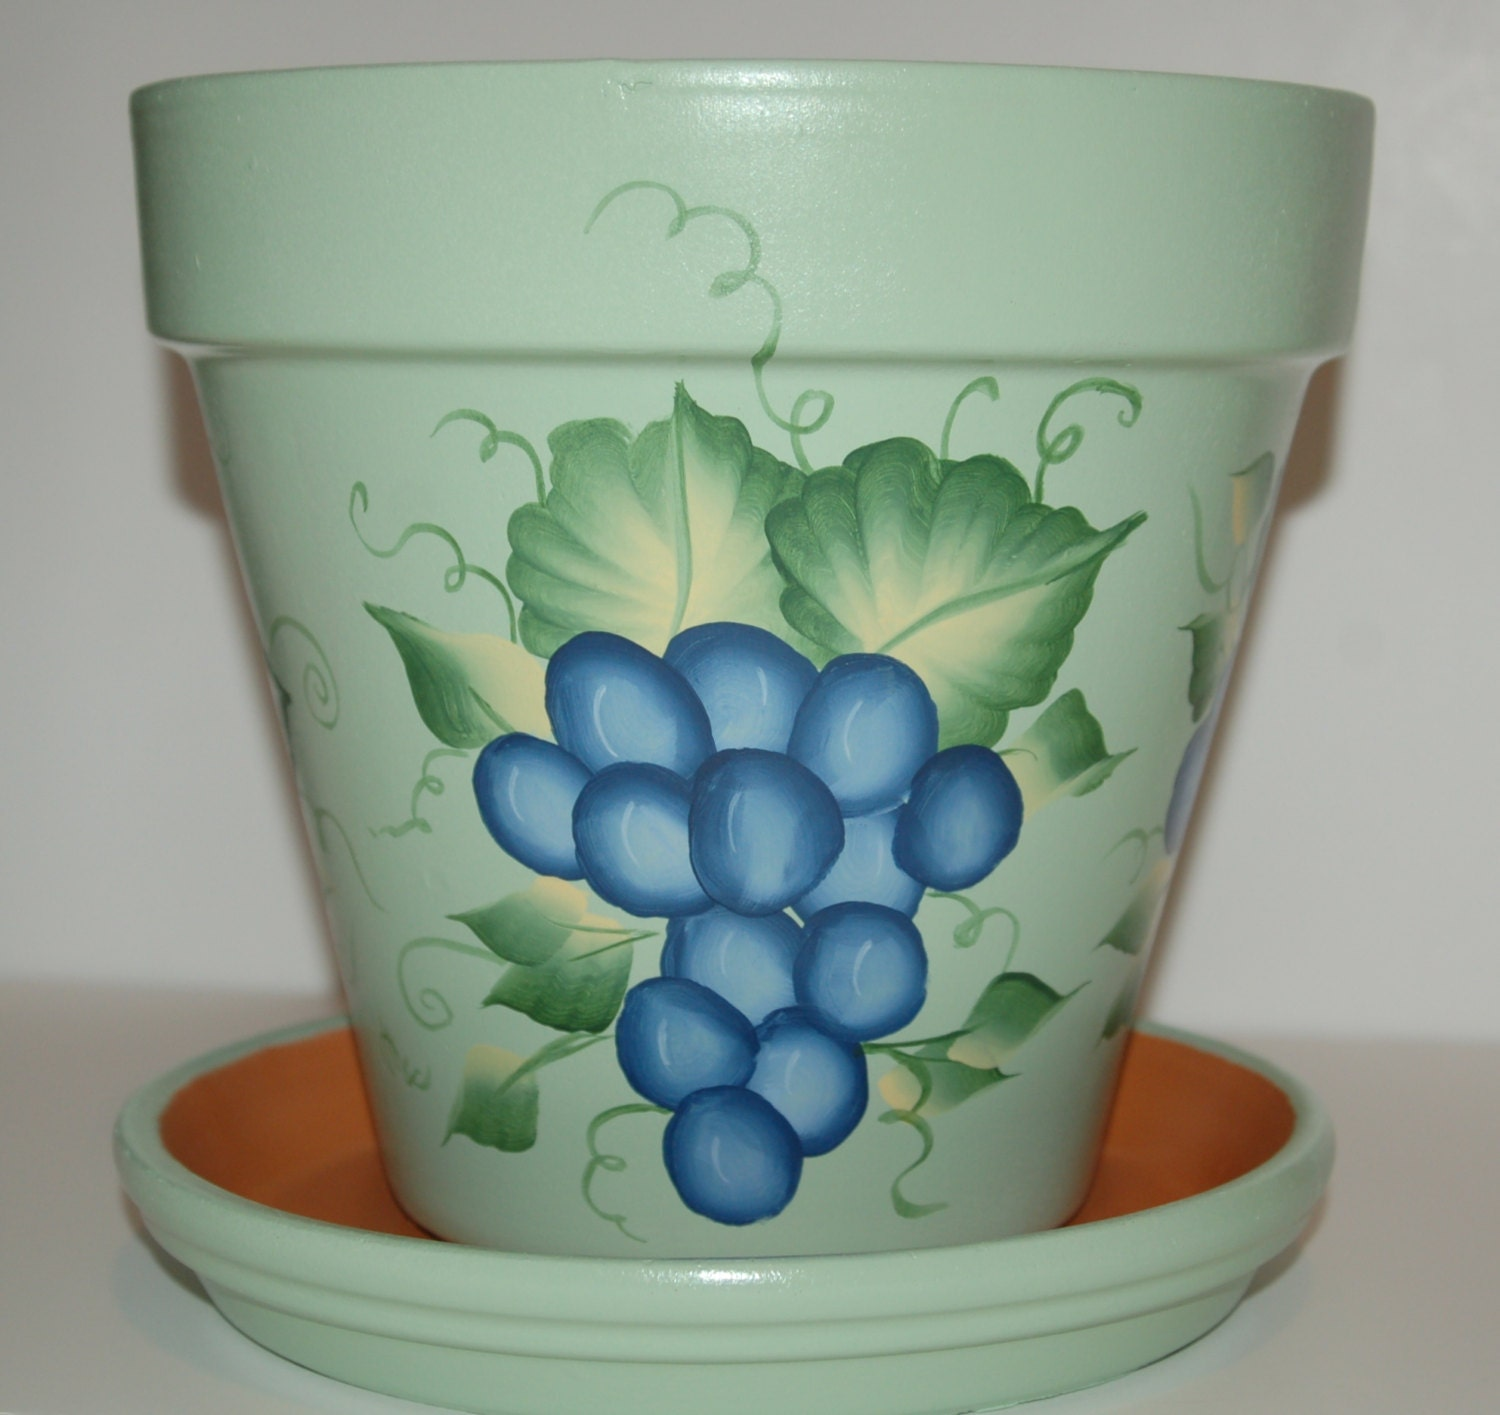 Hand Painted Clay Flower Pot One Stroke Grapes Design 8 Inches